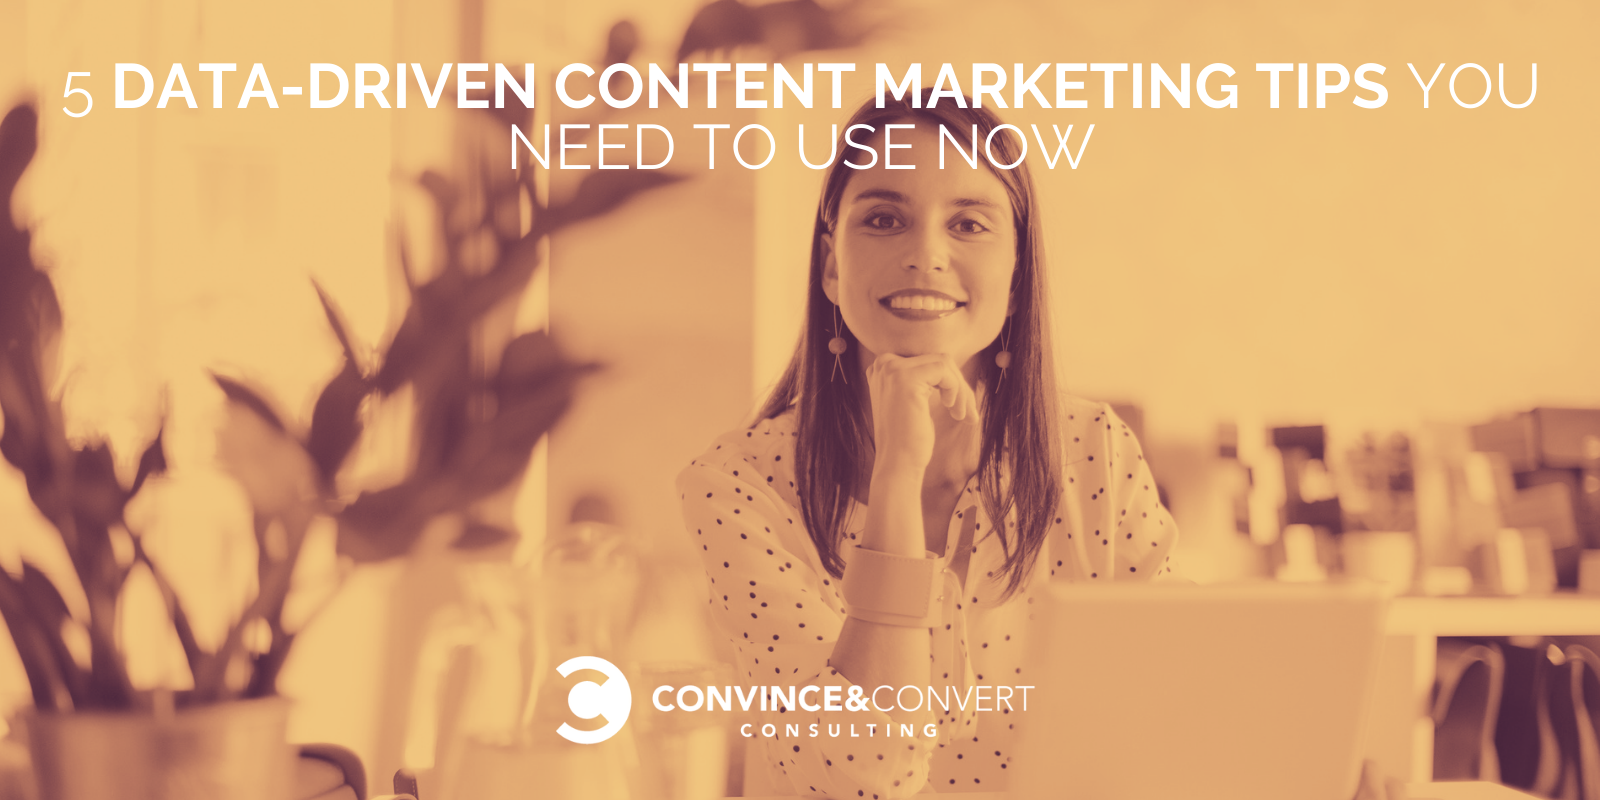 Internet marketing 5 Data-Driven Content Marketing Tips You Need to Use Now